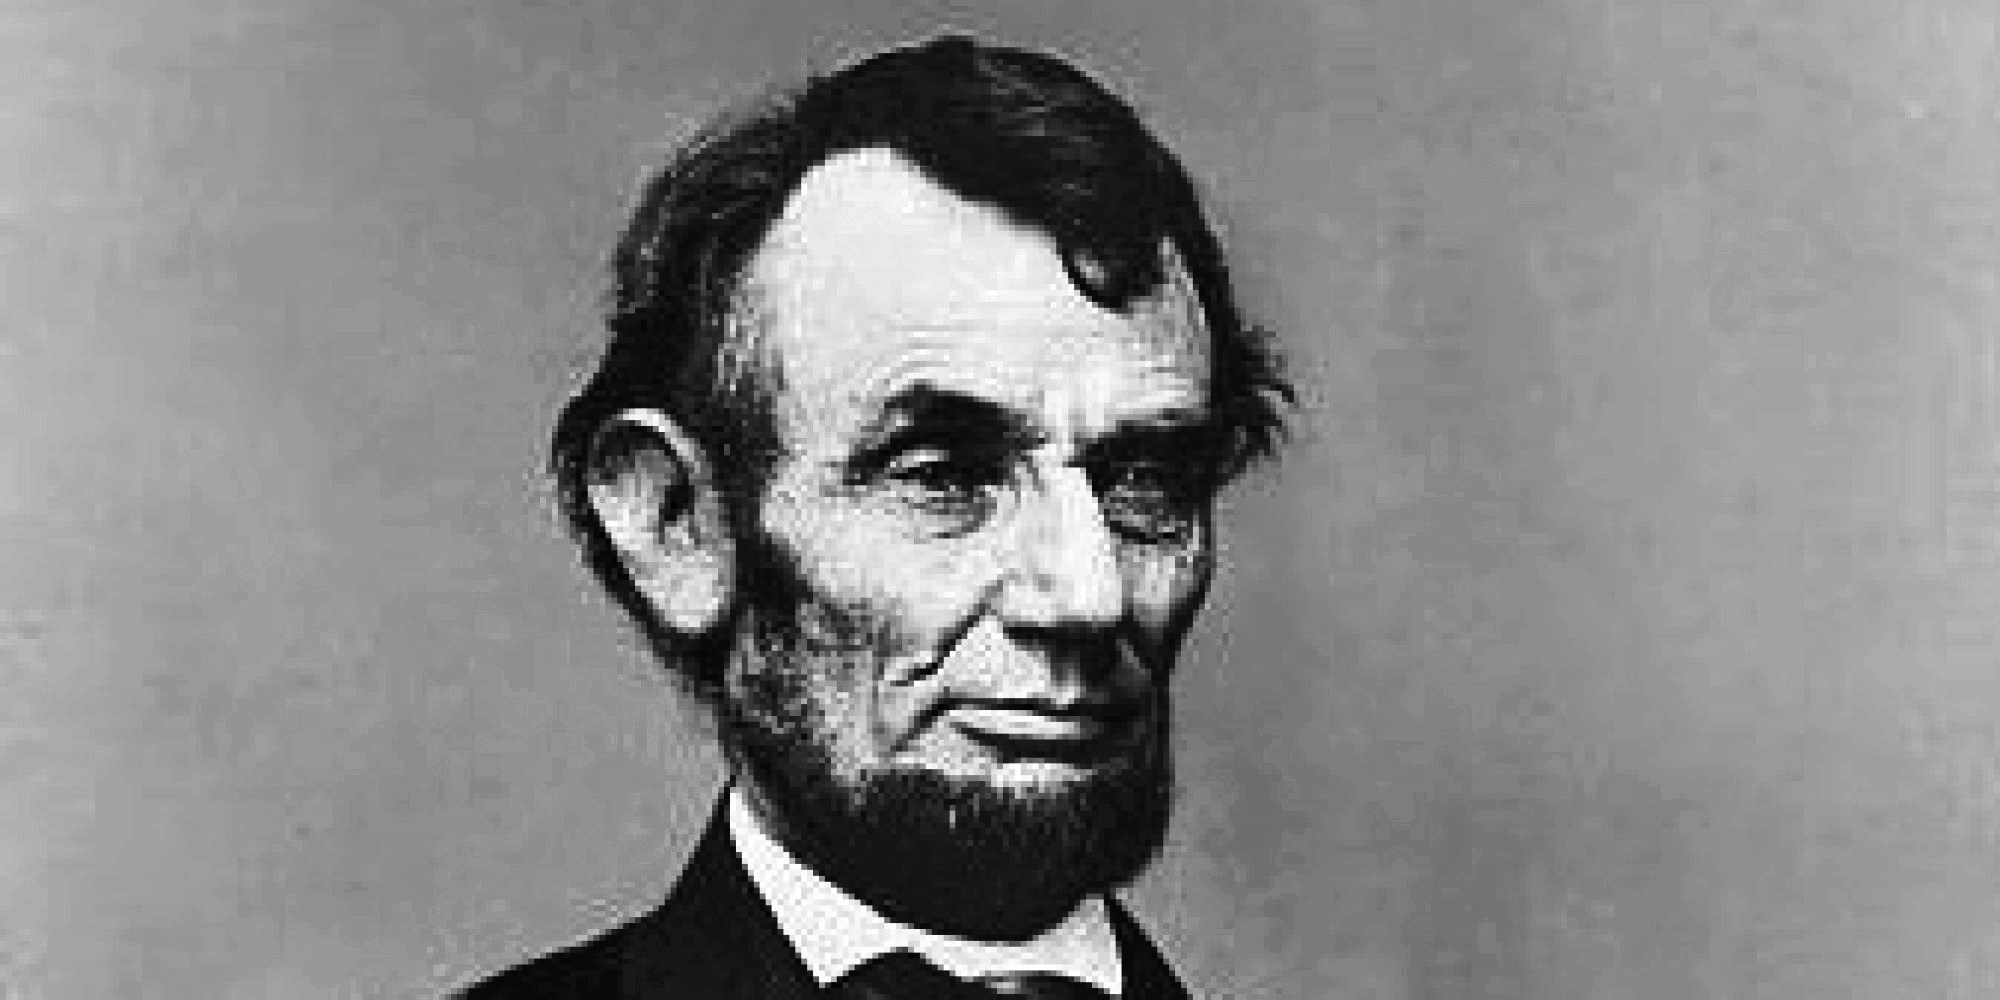 biography of abraham lincoln with work Abraham lincoln was born in 1809 in kentucky (usa) he worked on the farm of his father he attended school for less than a year, but taught himself to read and write he did different types of jobs before he settled as a highly successful lawyer he was gradually drawn to politics the country was.